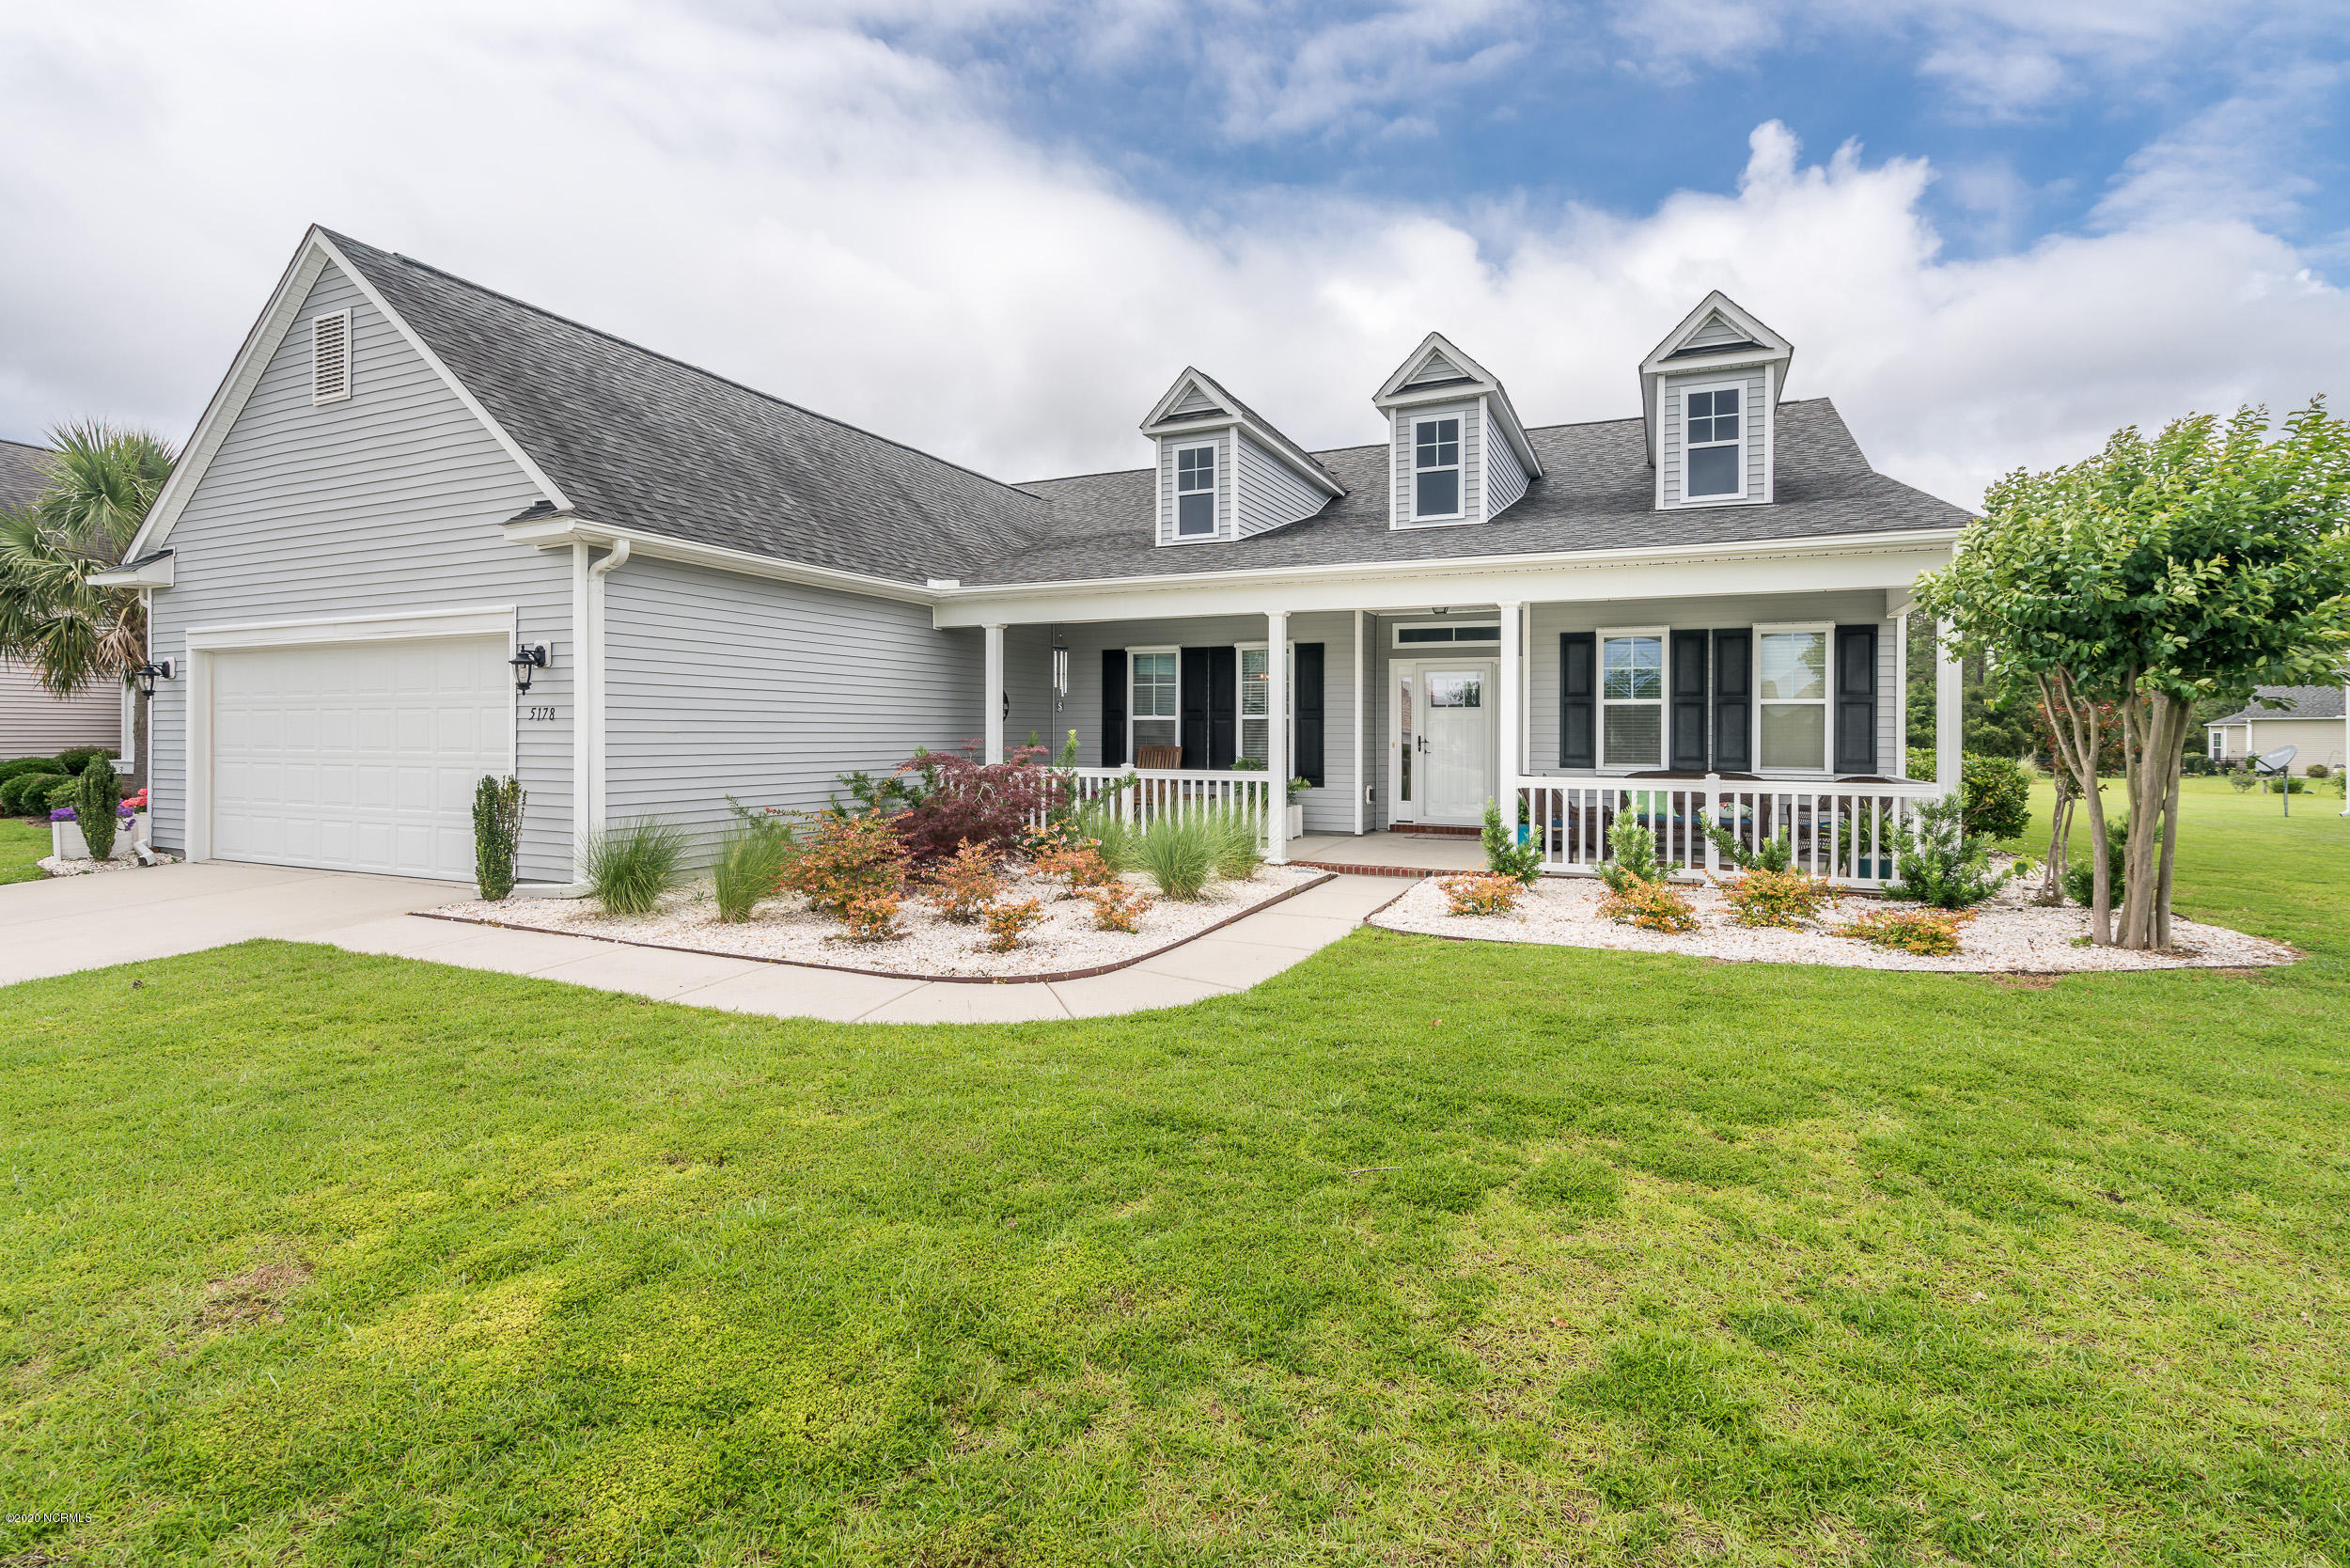 5178 Swashbuckler Way Southport, NC 28461